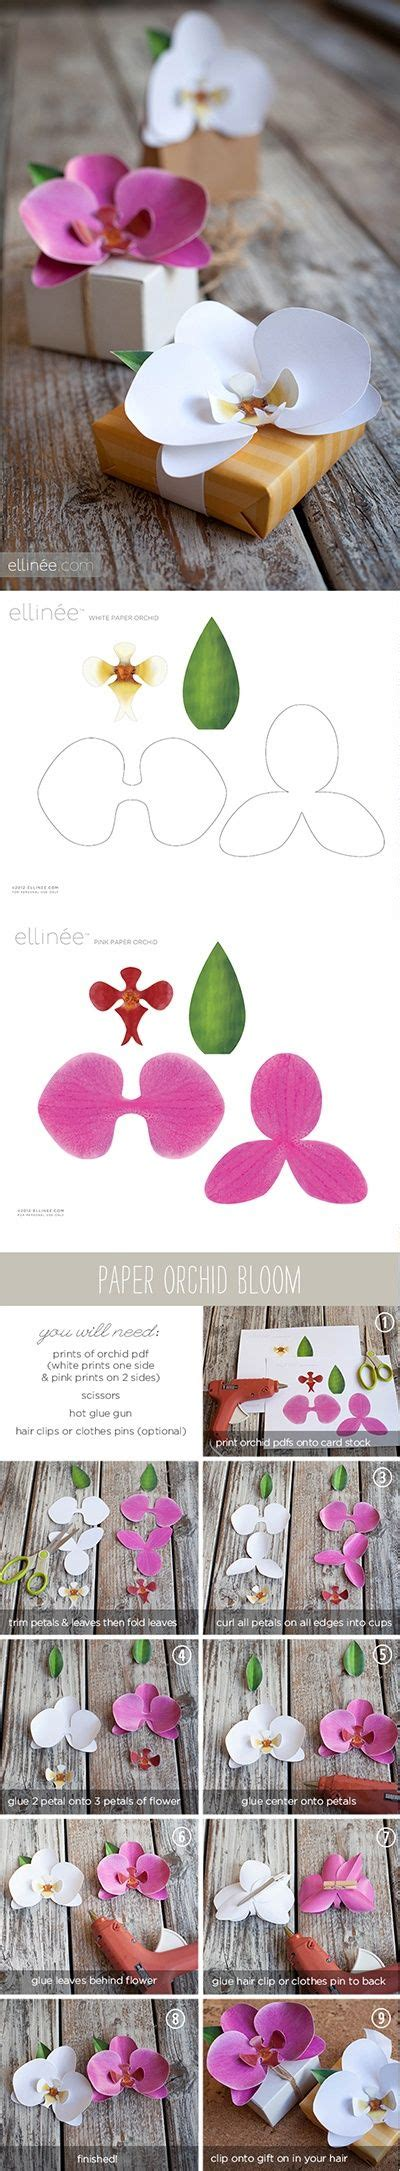 Ellinee The Paper Snowflake - 60 best images about etsy orchid clover on